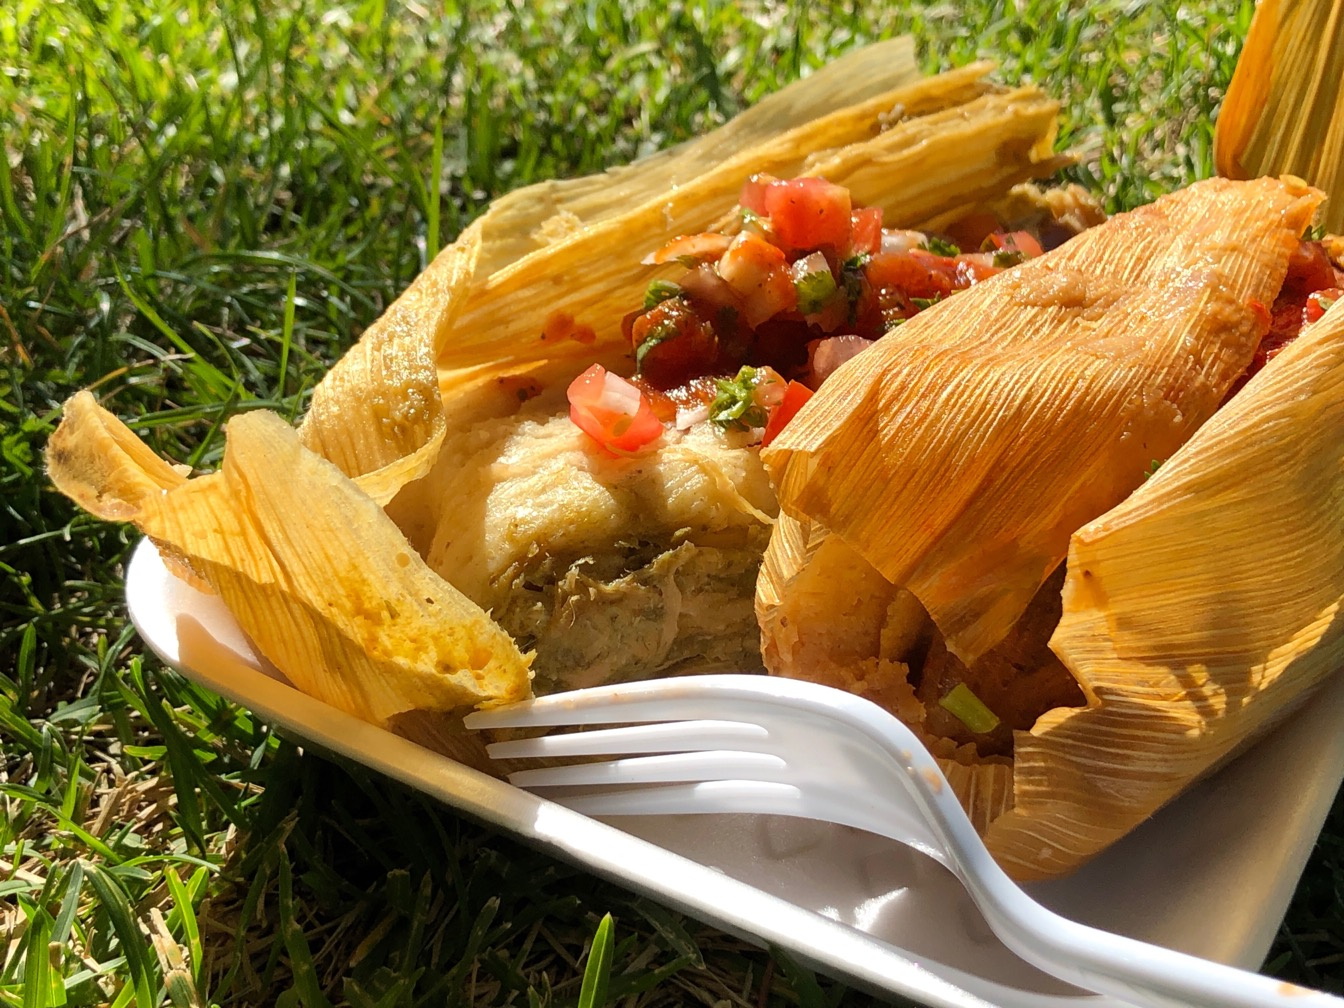 Two tamales in a container on a park lawn.